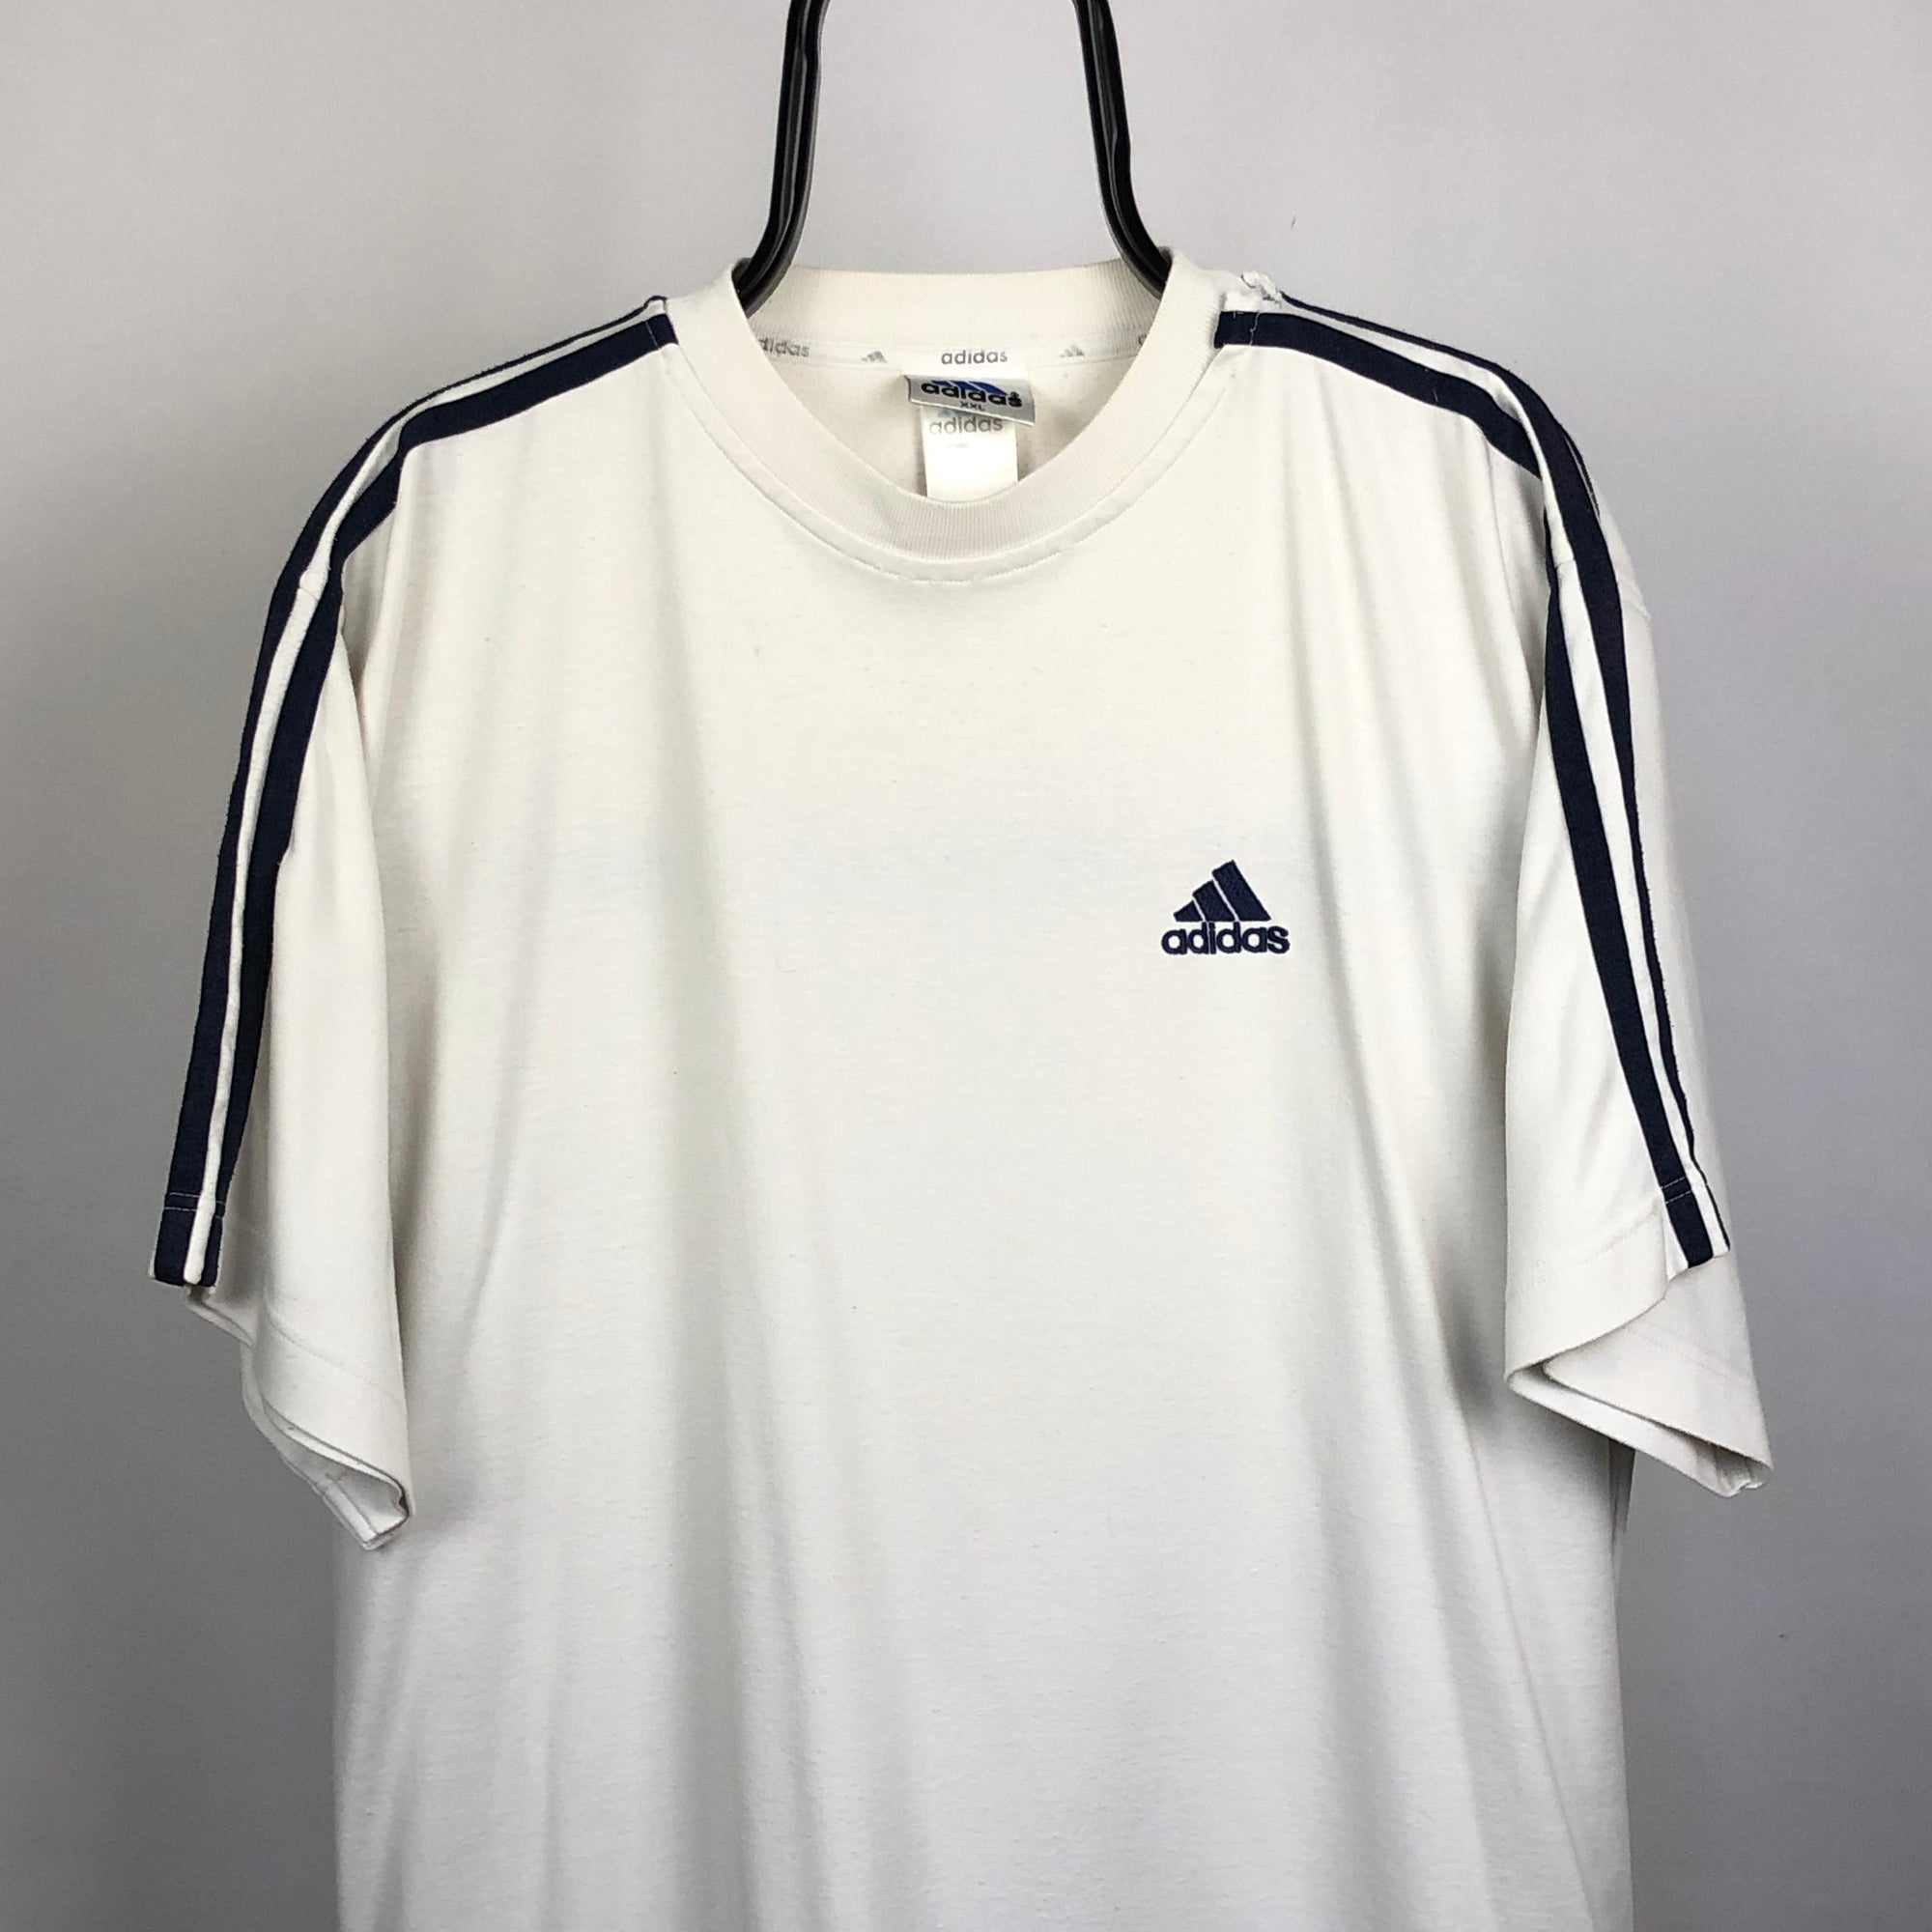 Vintage Adidas Embroidered Small Logo Tee in White - Men's XL/Women's XXL